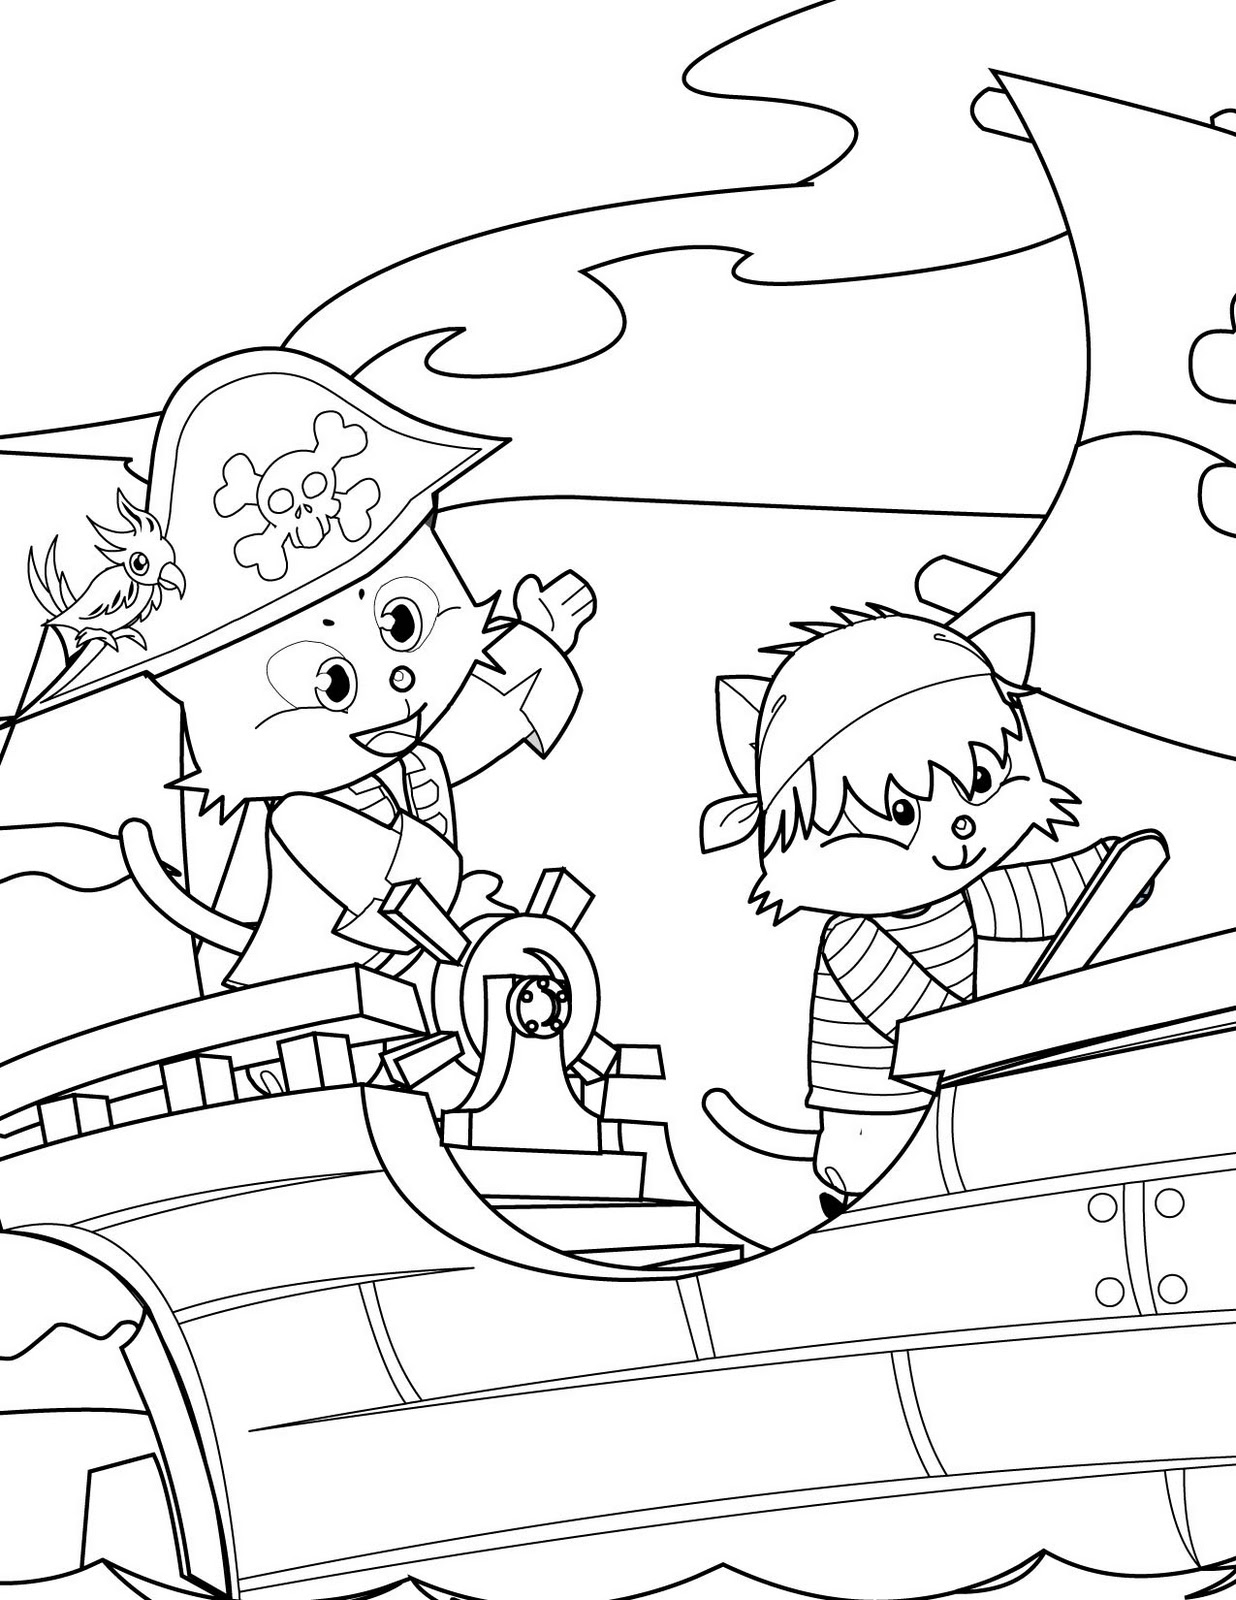 pitate coloring pages | blog creation2: 10 Pirates Coloring Pages to Print and ...